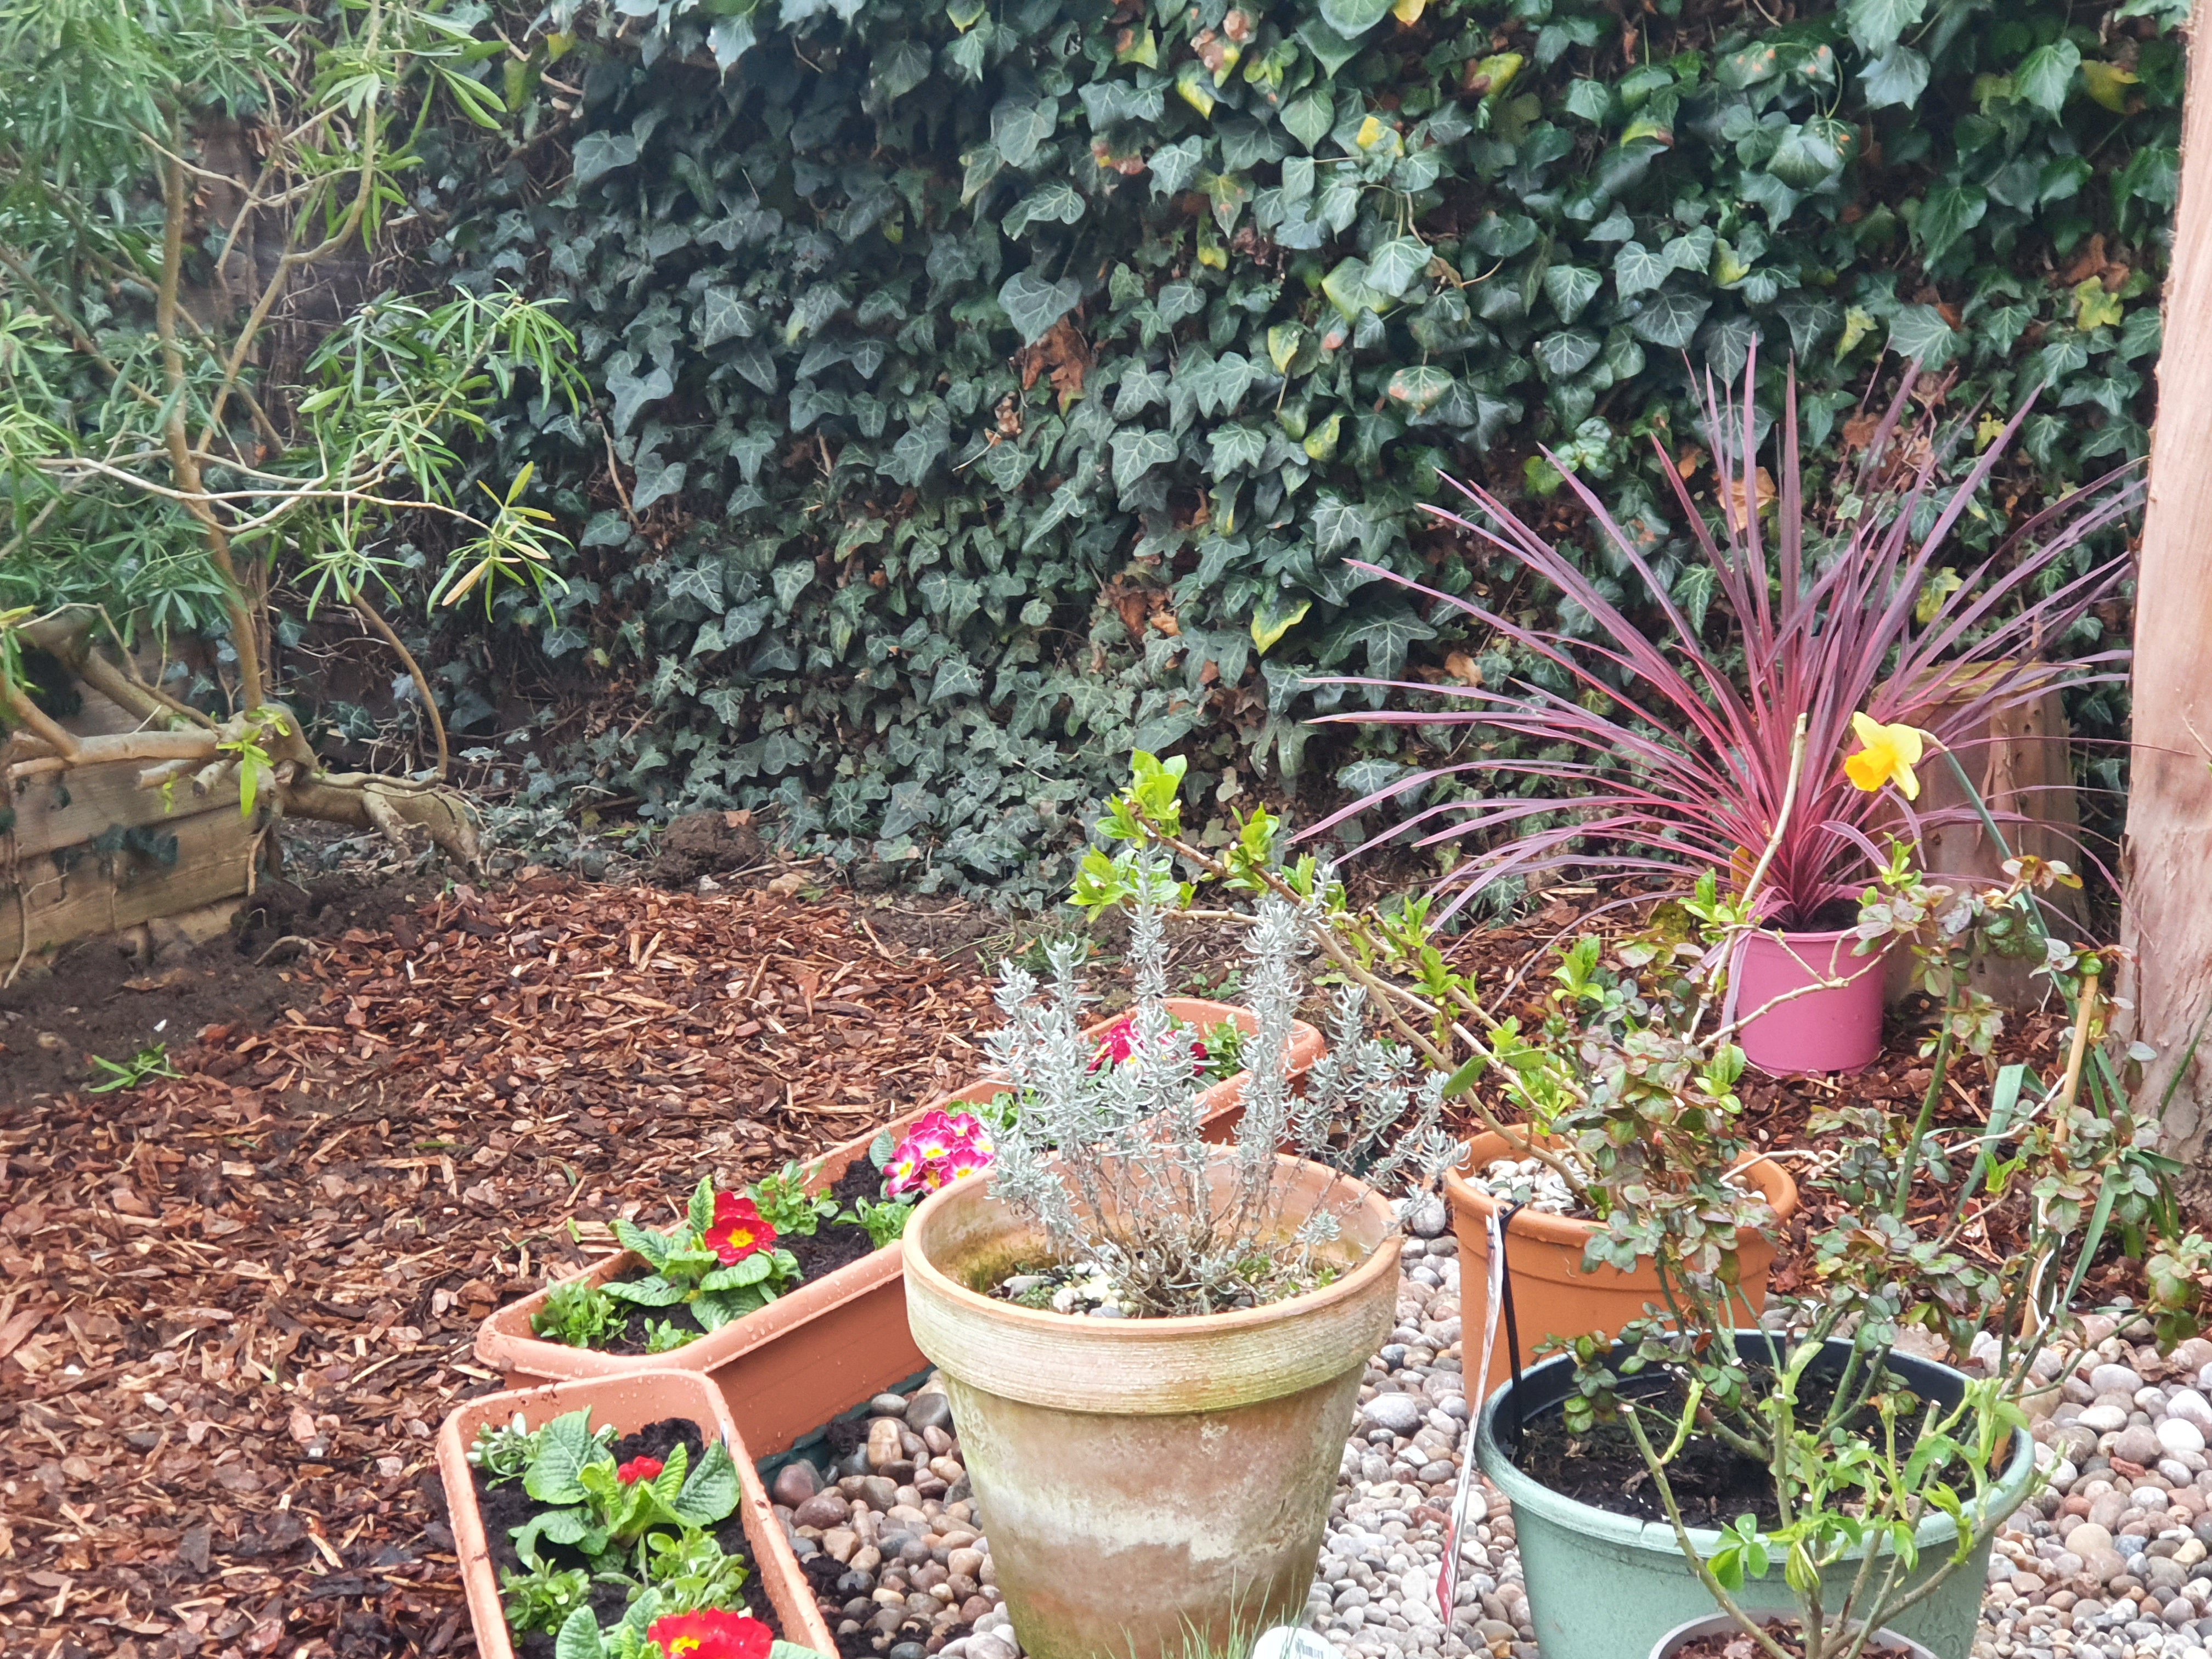 Potted shrubs and wood chip